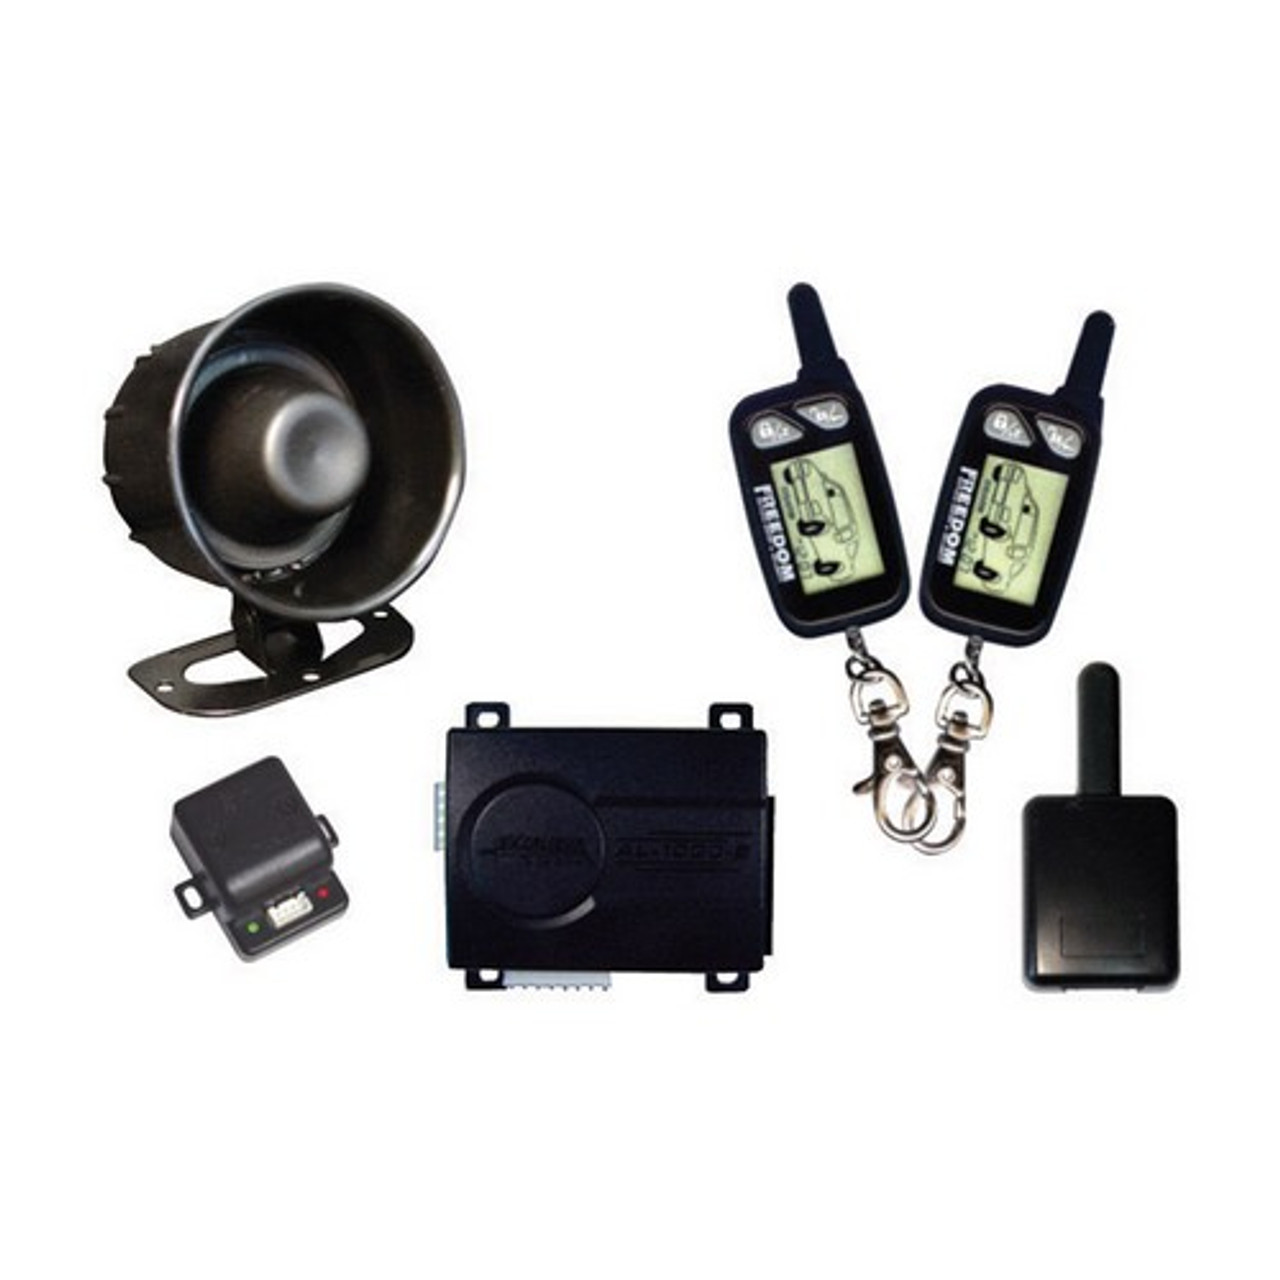 Excalibur ECHO3 Two Way Remote Upgrade Multi Car Operation